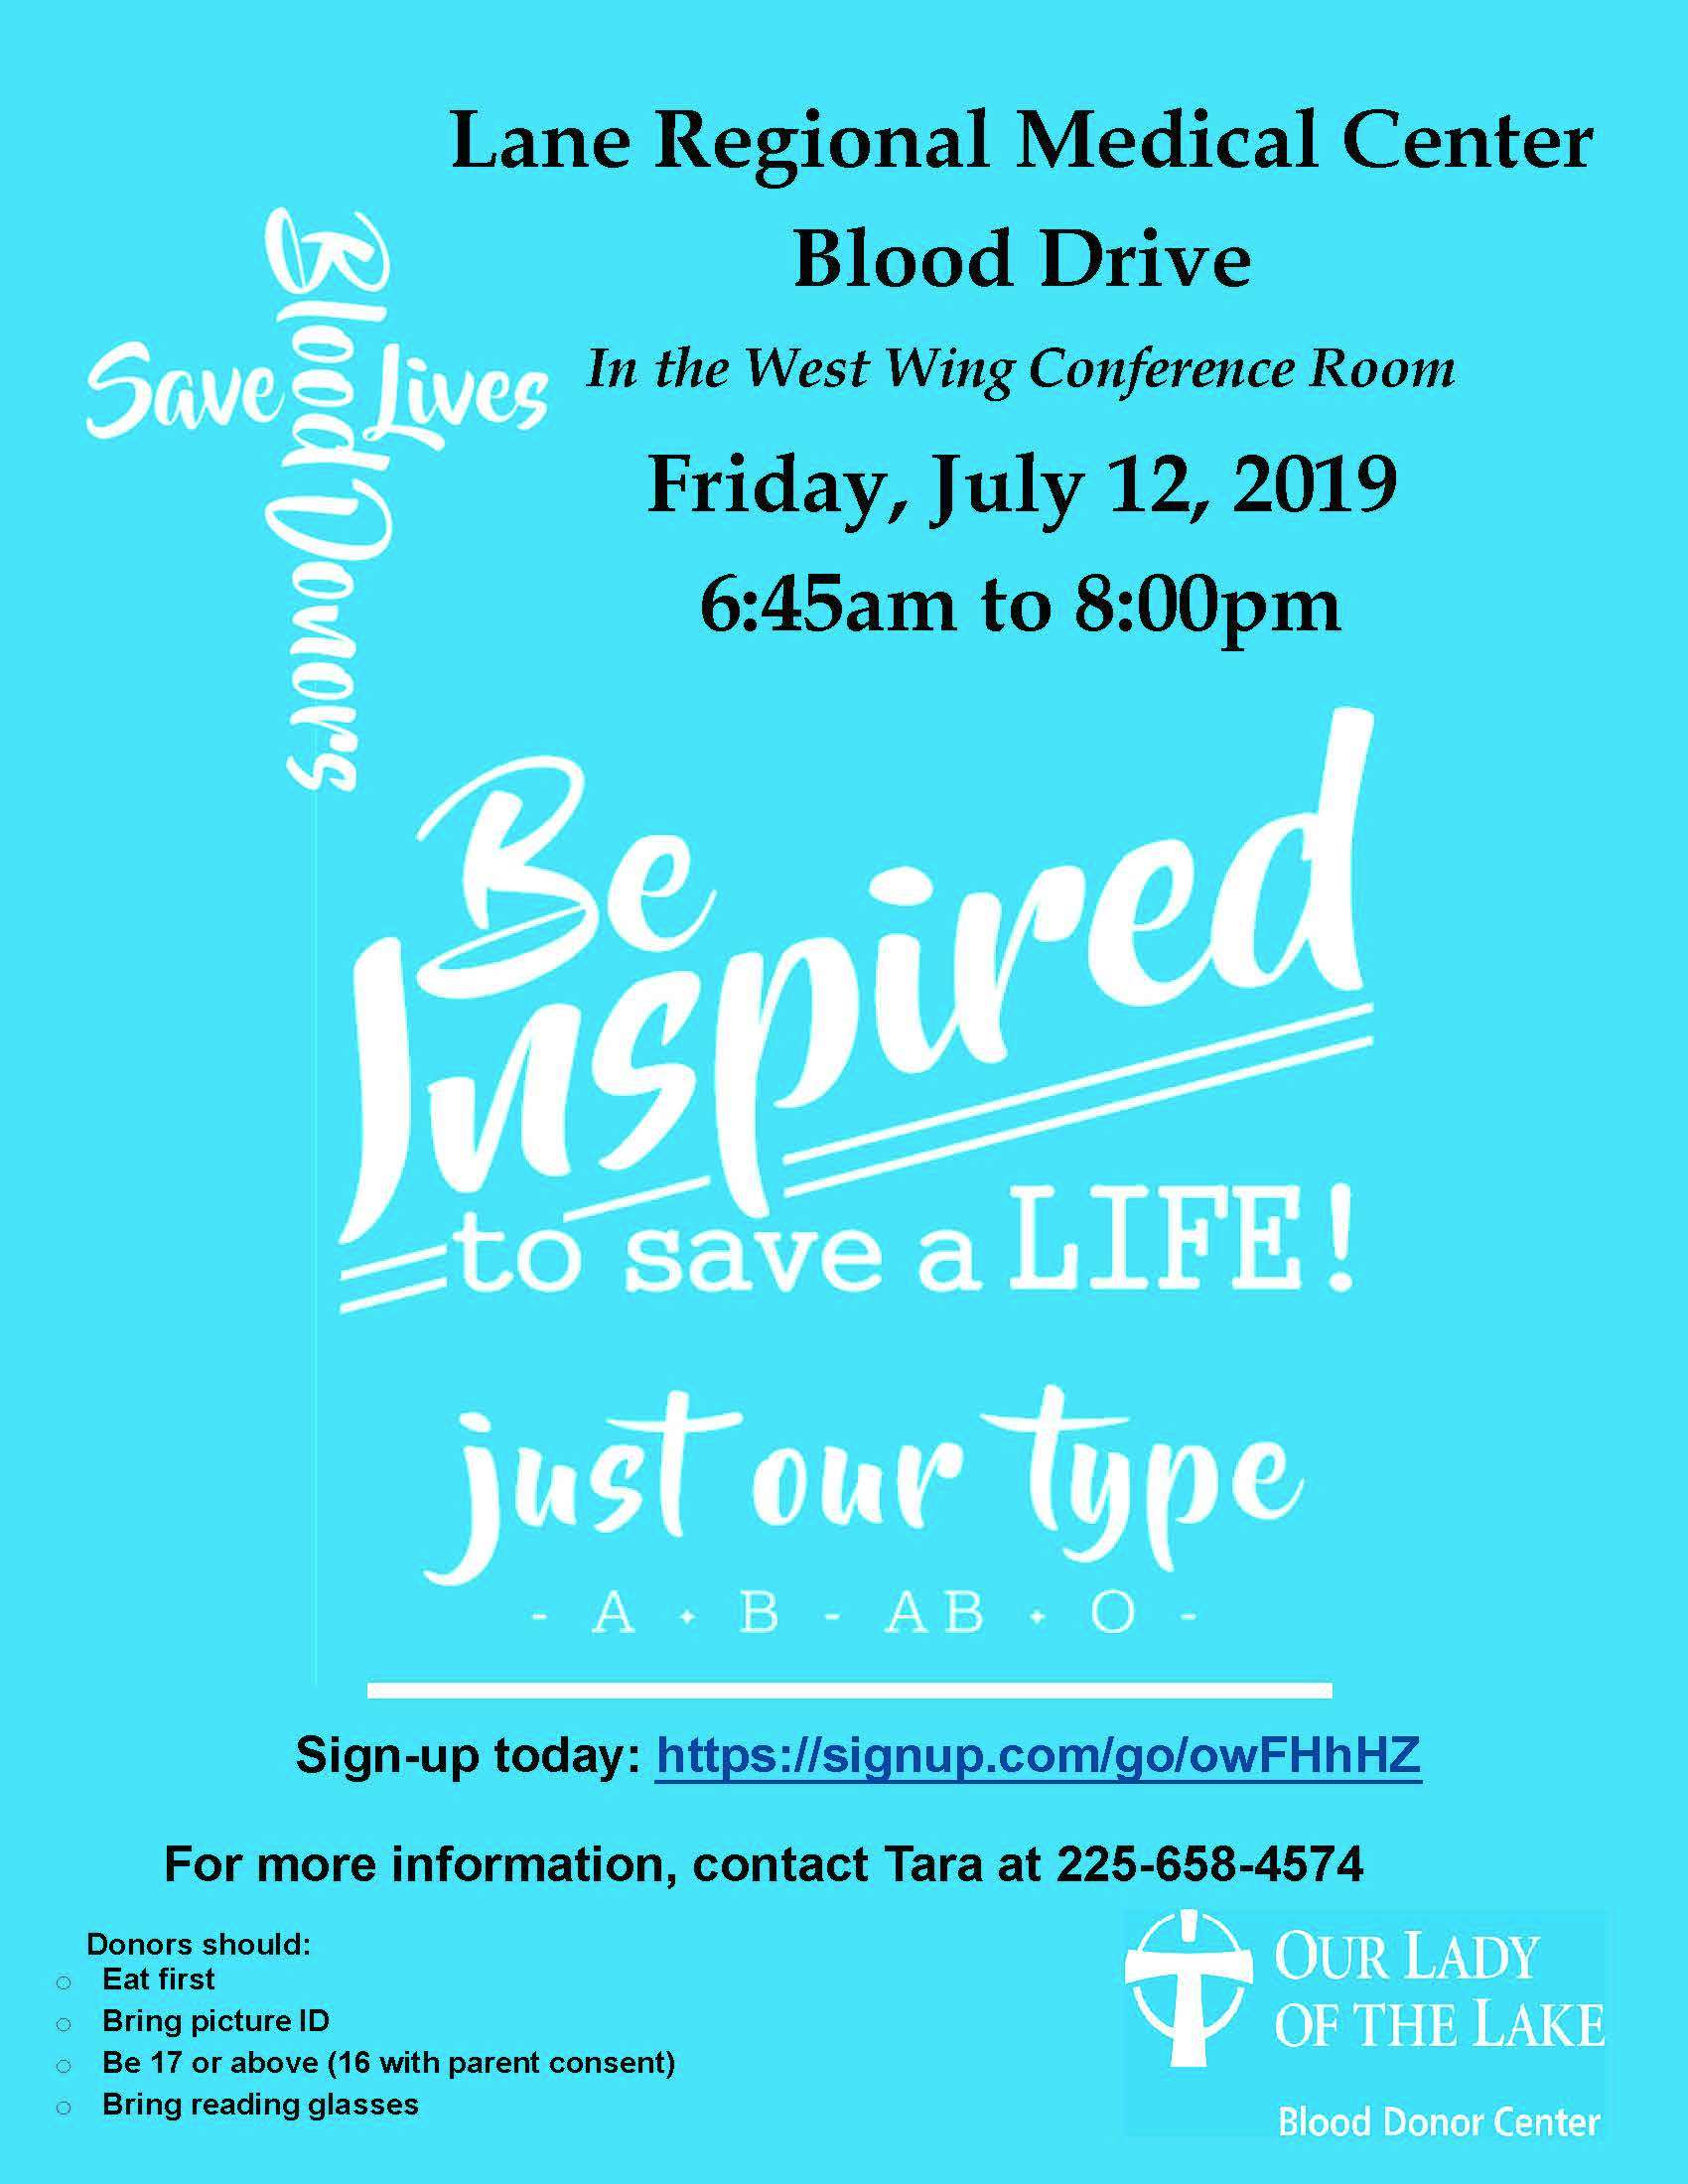 Blood Drive at Lane RMC Friday, July 12